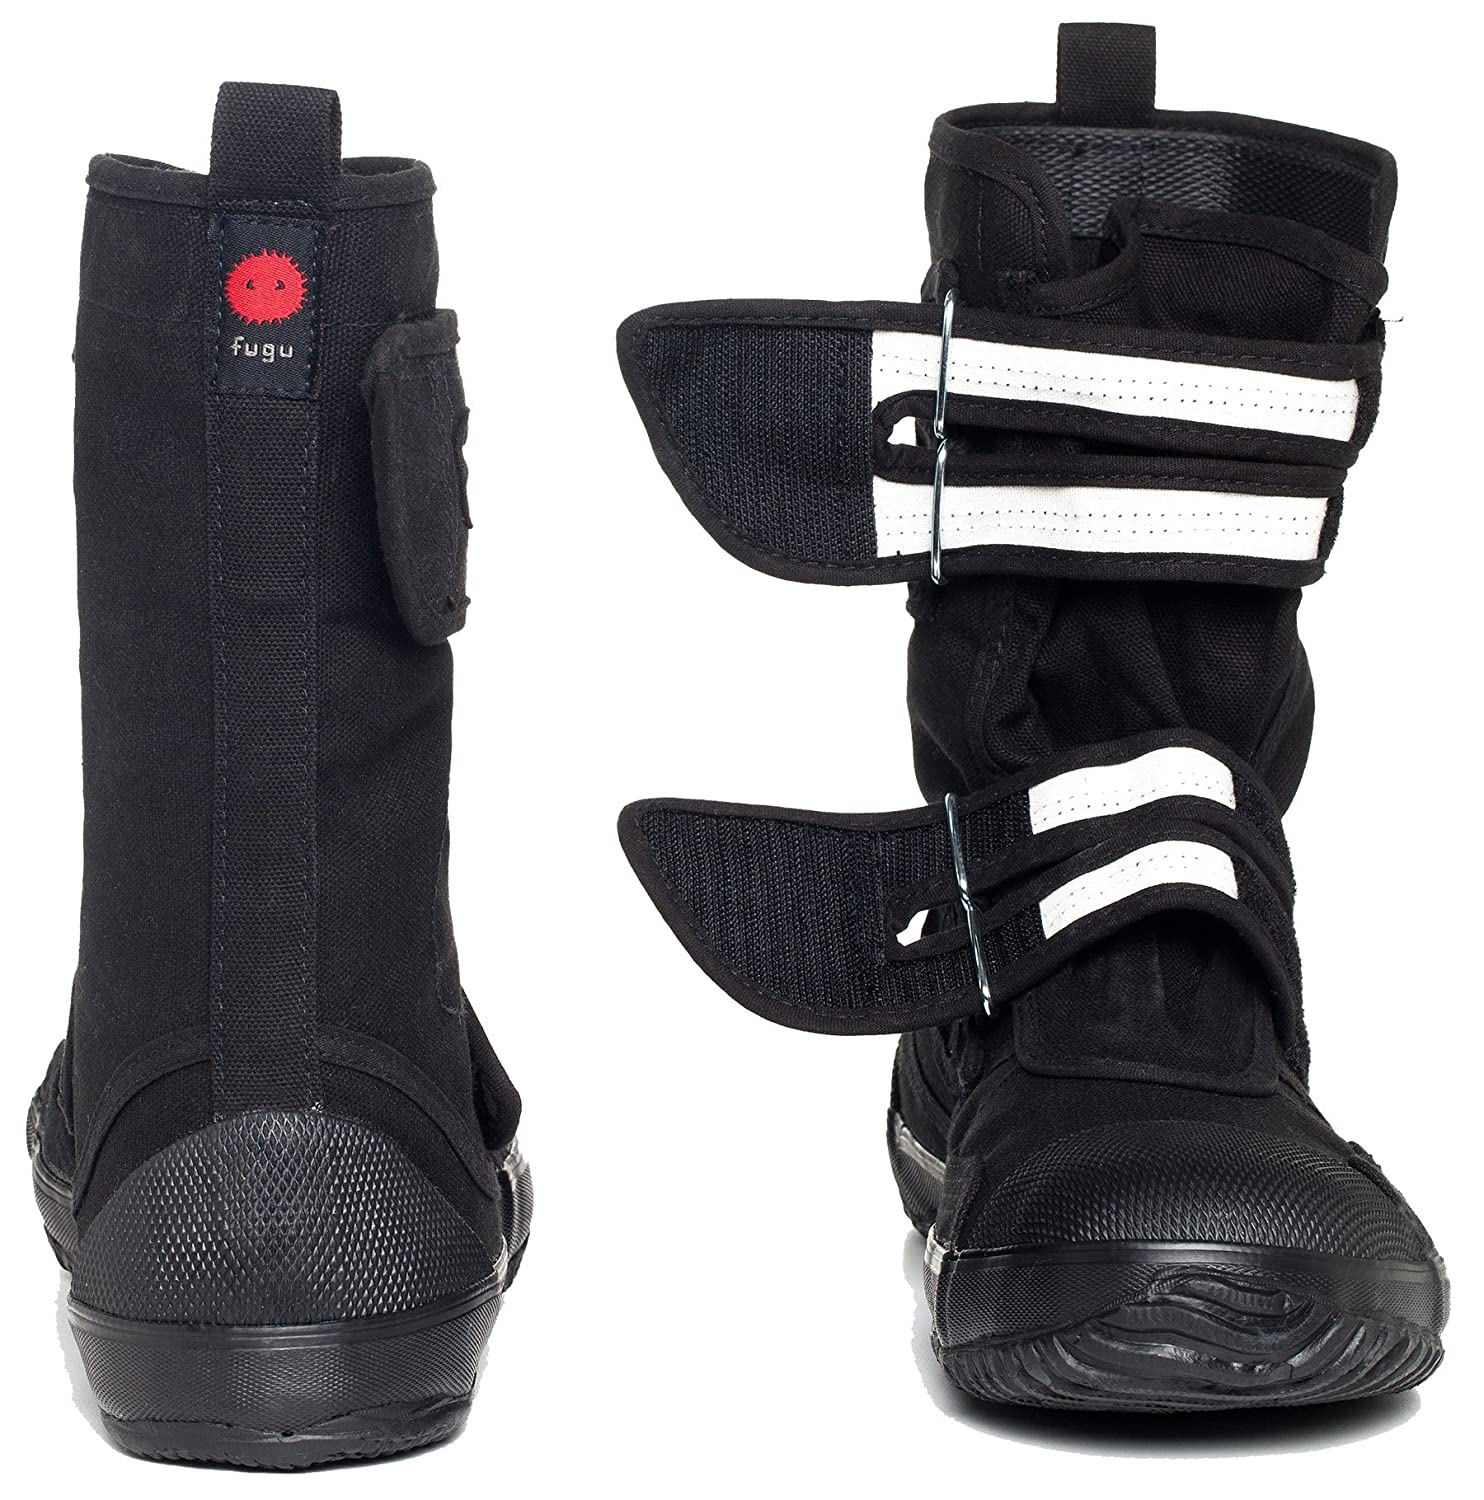 fugu Sa-Me Japanese Vegan with Boots, Eco-Friendly Mid-Calf Boots with Vegan Rubber Sole B01524RZNI USW 8.5 - 9 JP25|Black 12d5f5